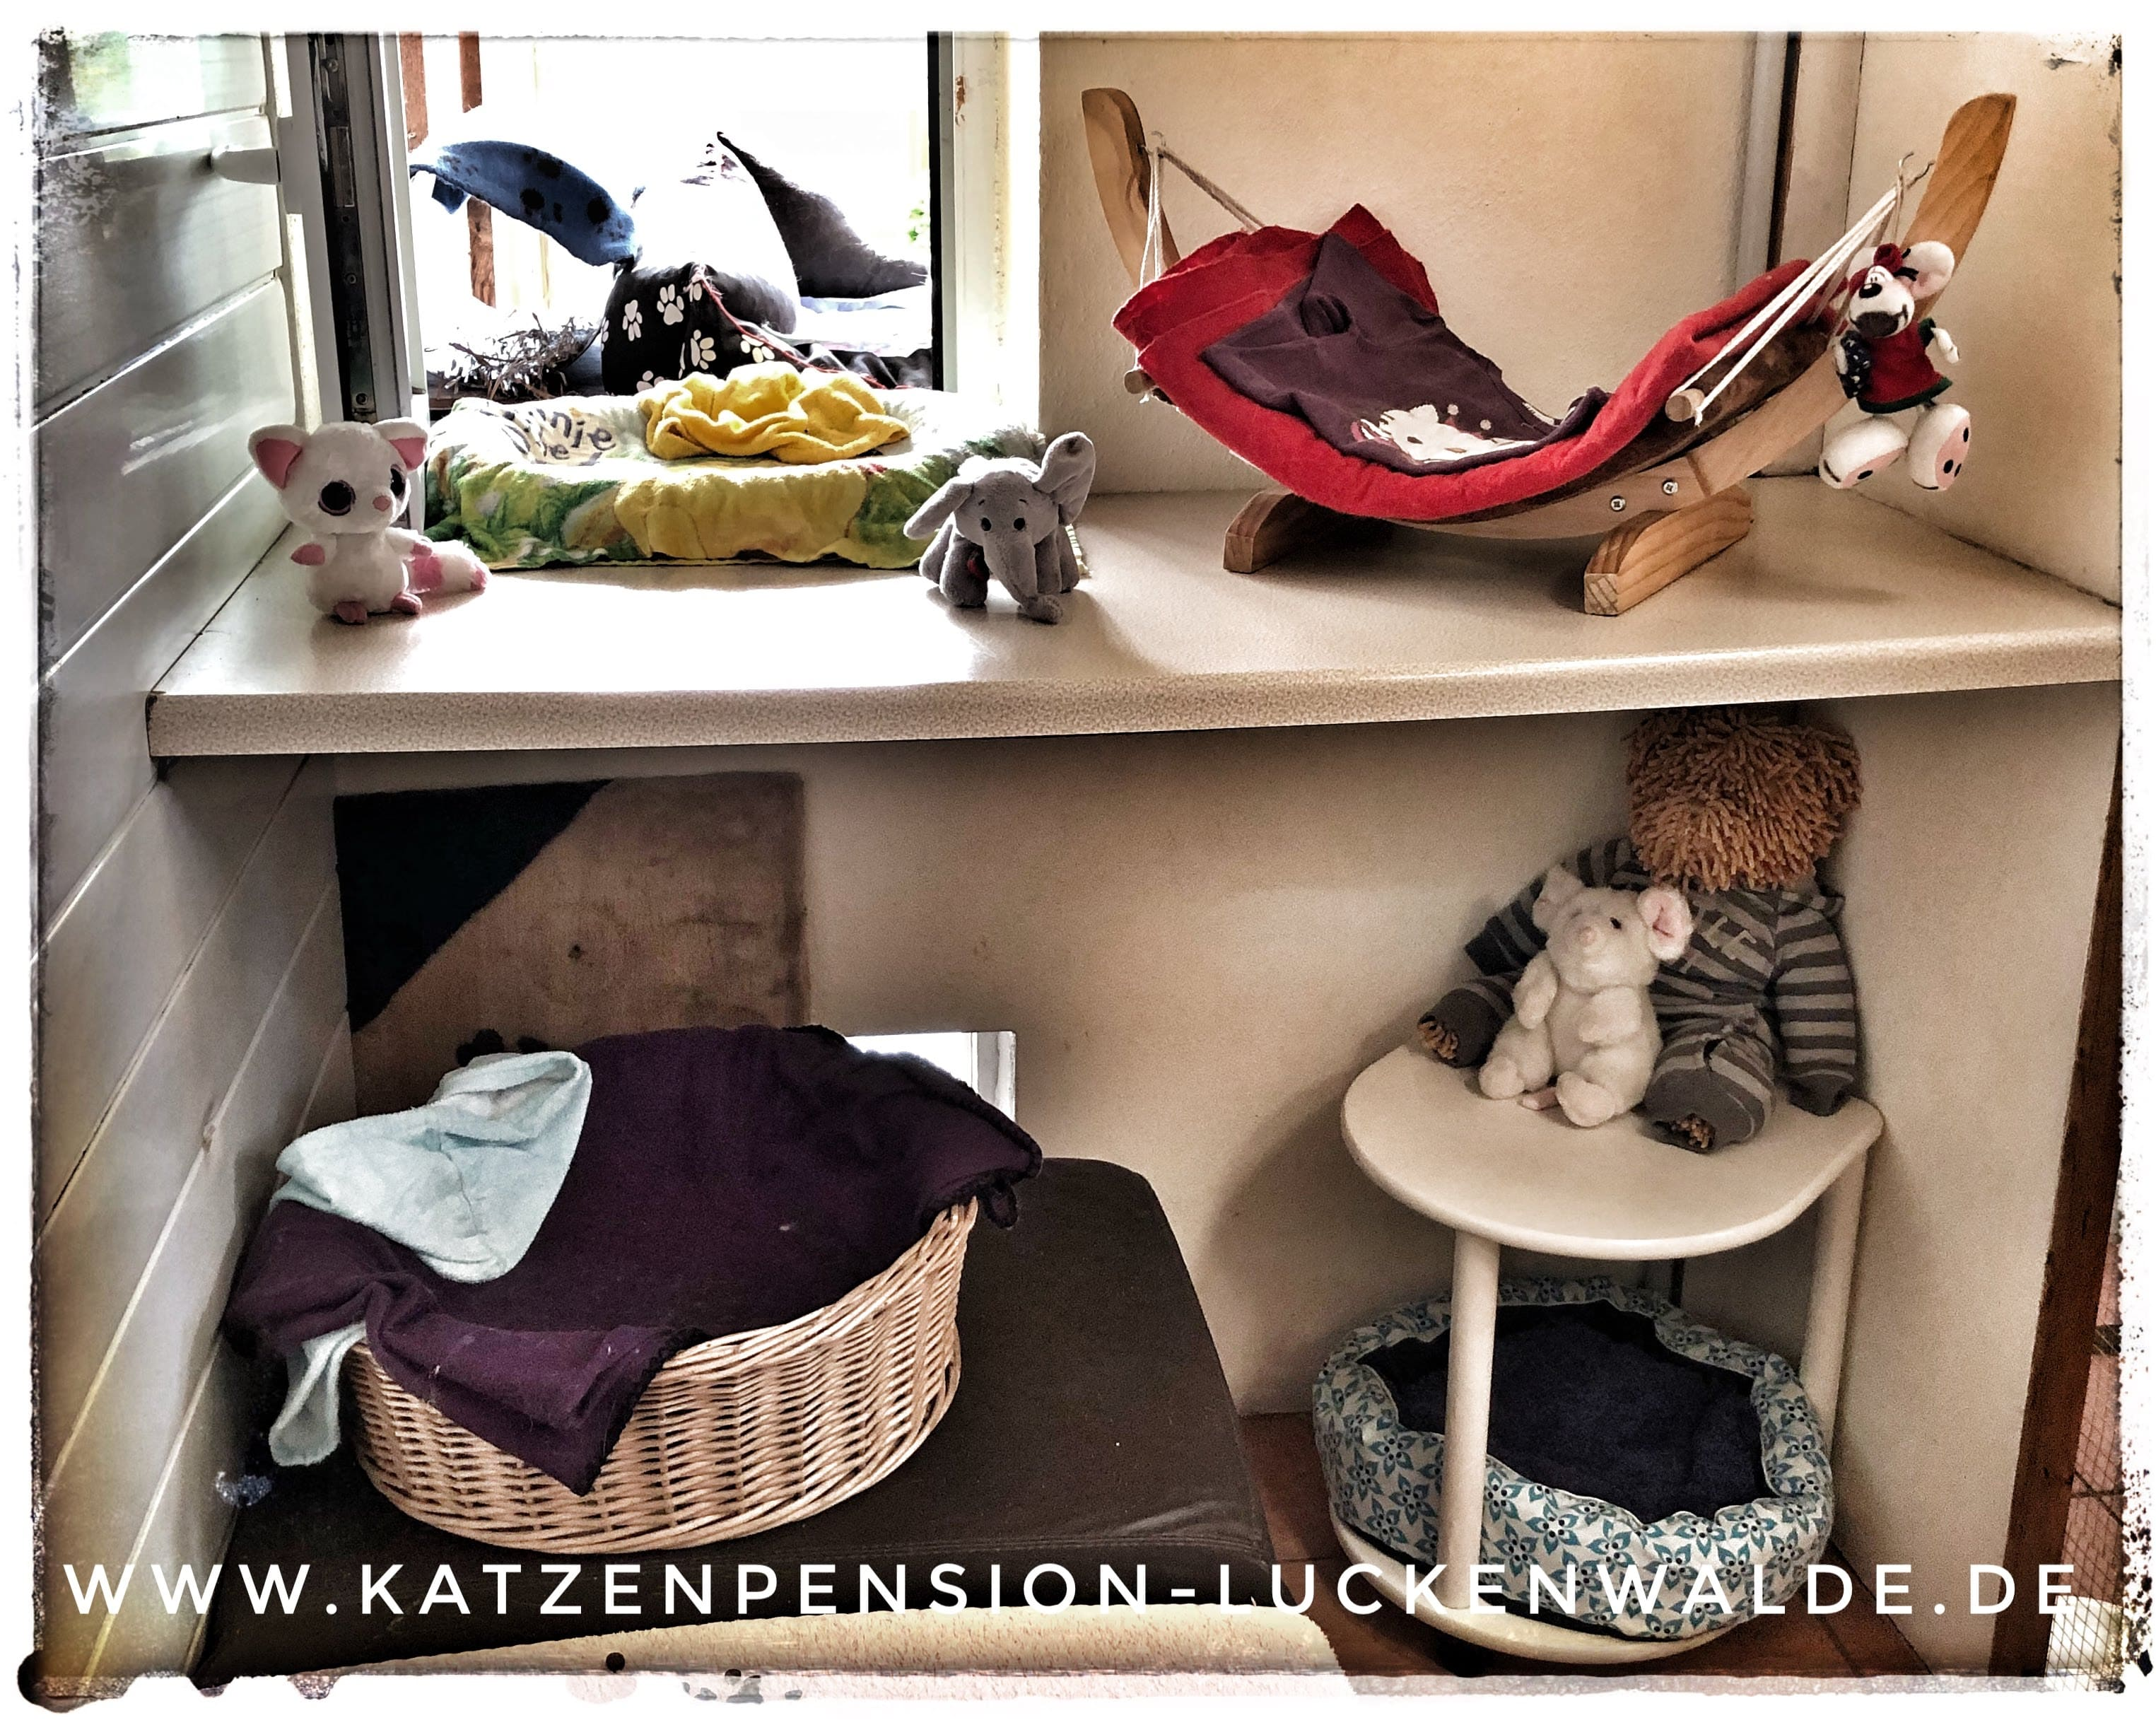 Tierpension In Meiner Nähe in ihrer Region Berlin Charlottenburg-Nord - IMG 9522 min - TIERHOTEL - TIERBETREUUNG - KATZENPENSION in der NÄHE - FREIGEHEGE für KATZEN - KATZENPENSION KOSTEN